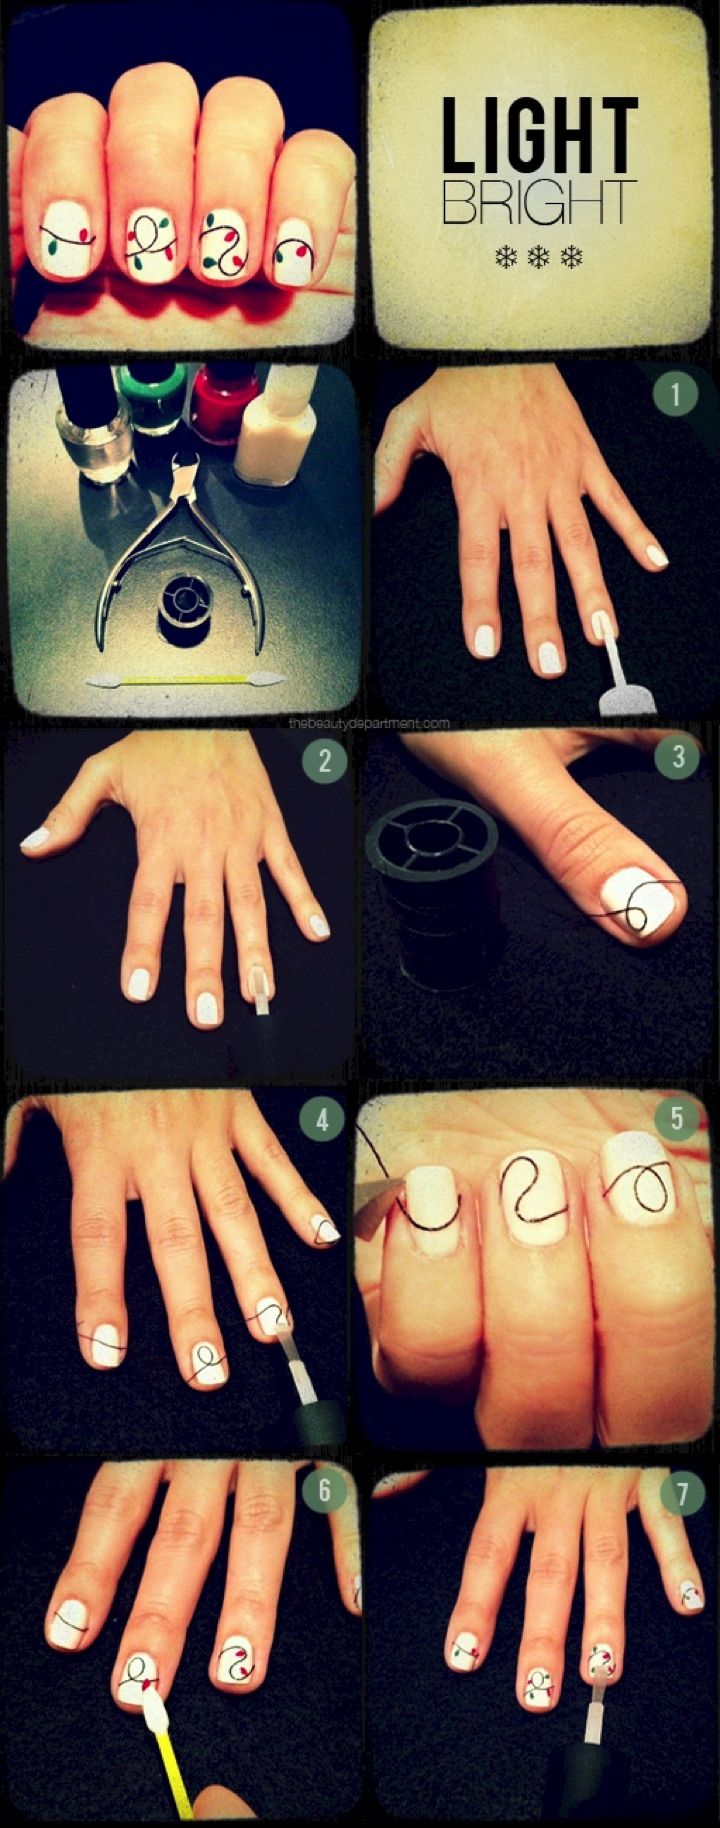 13 Easy Nail Designs - Get into the festive spirit with a cute Christmas lights mani.